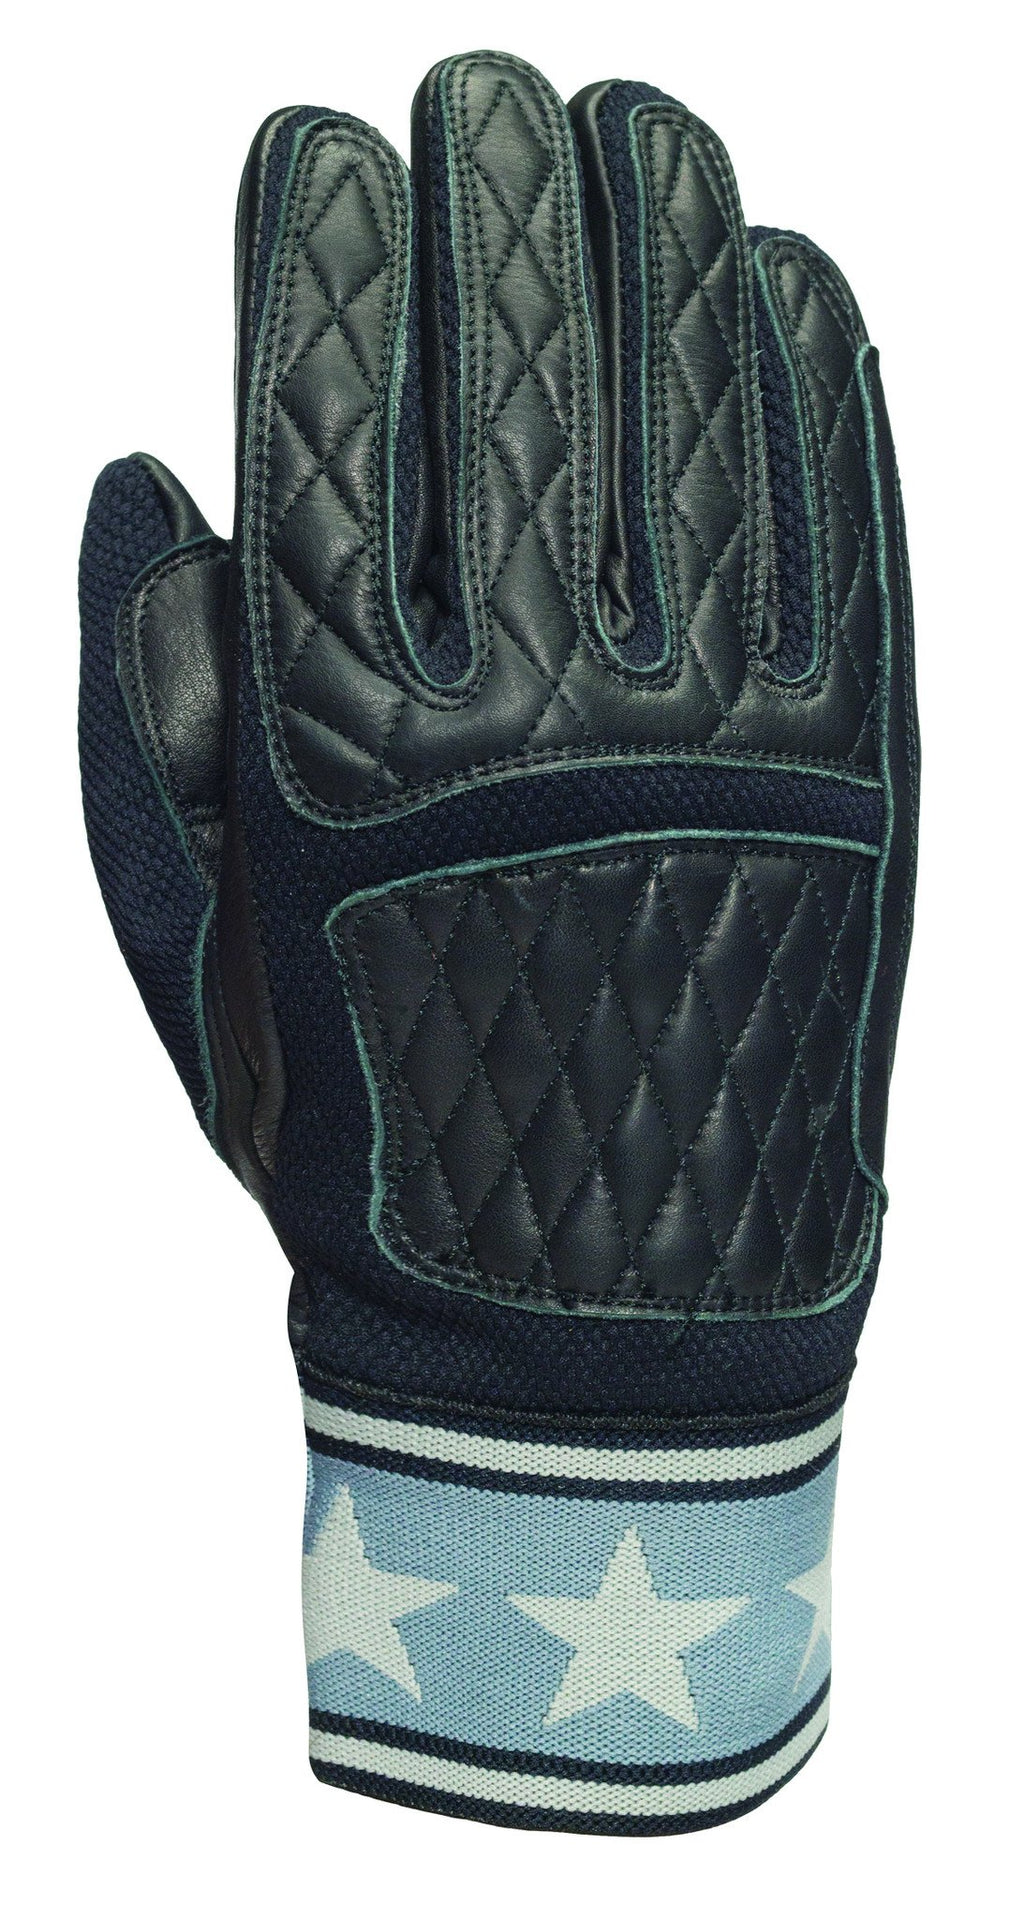 Roland Sands design Peristyle Gloves in Black